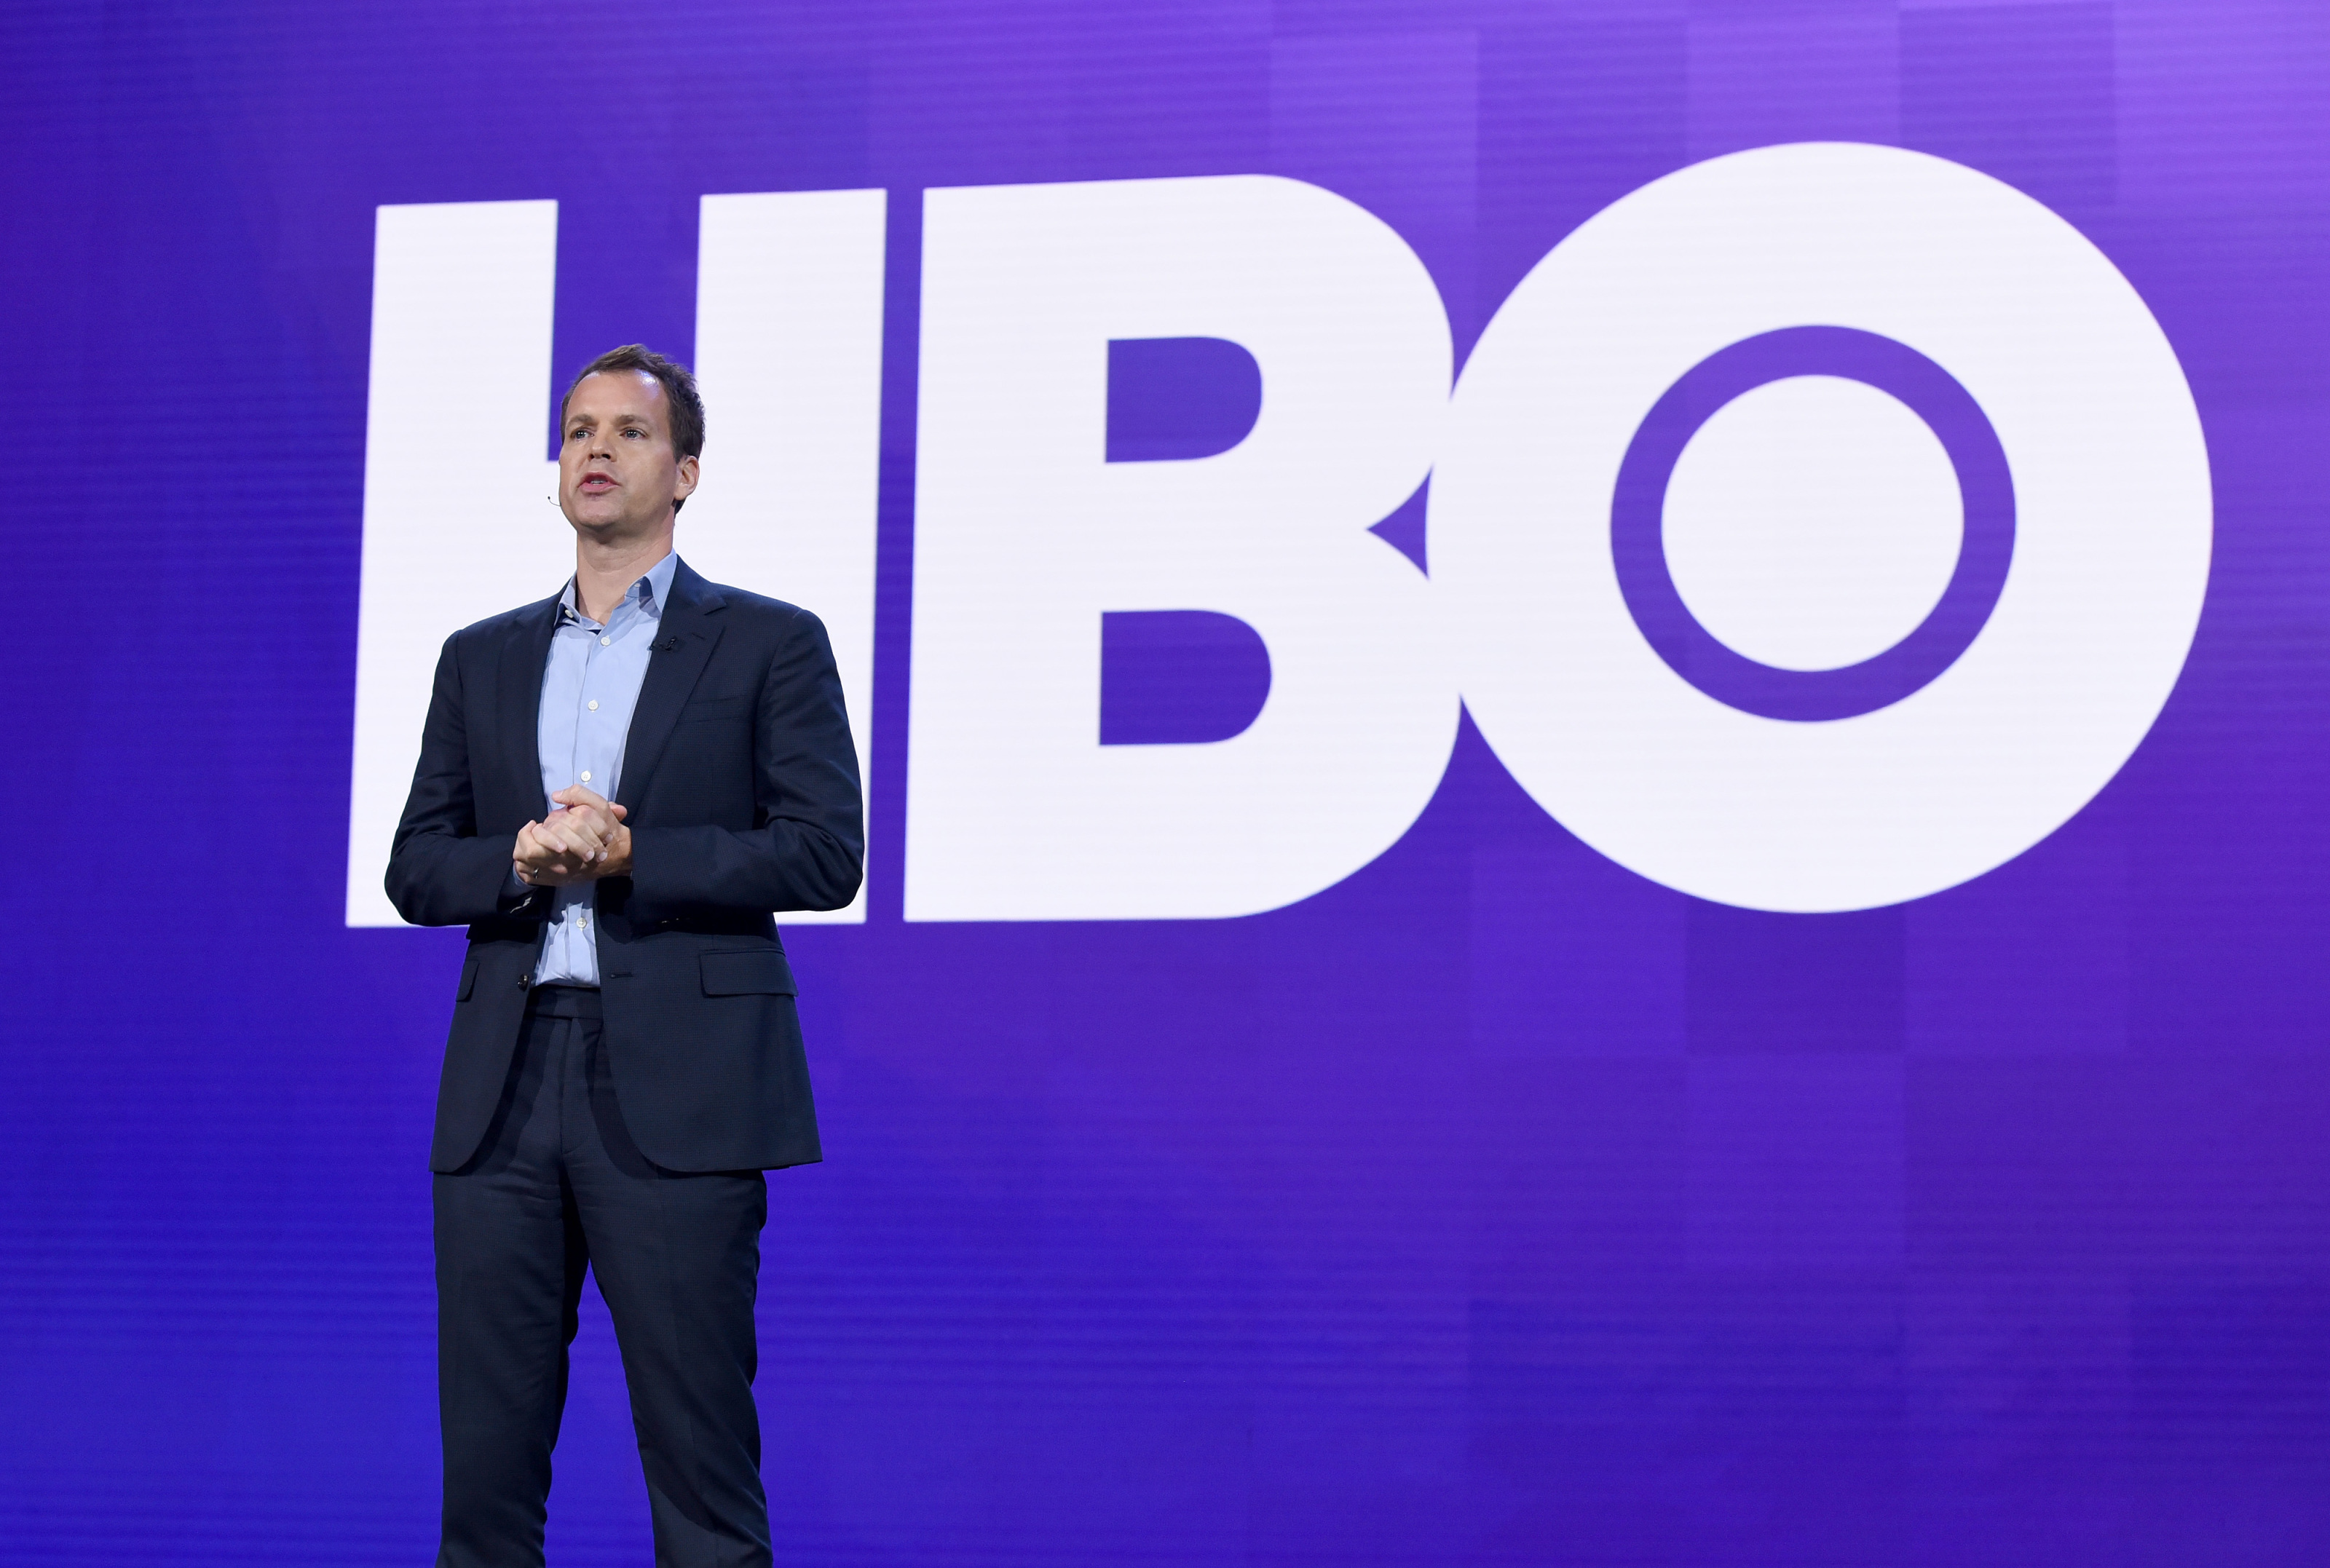 HBO Max Chief Officer Casey Bloys